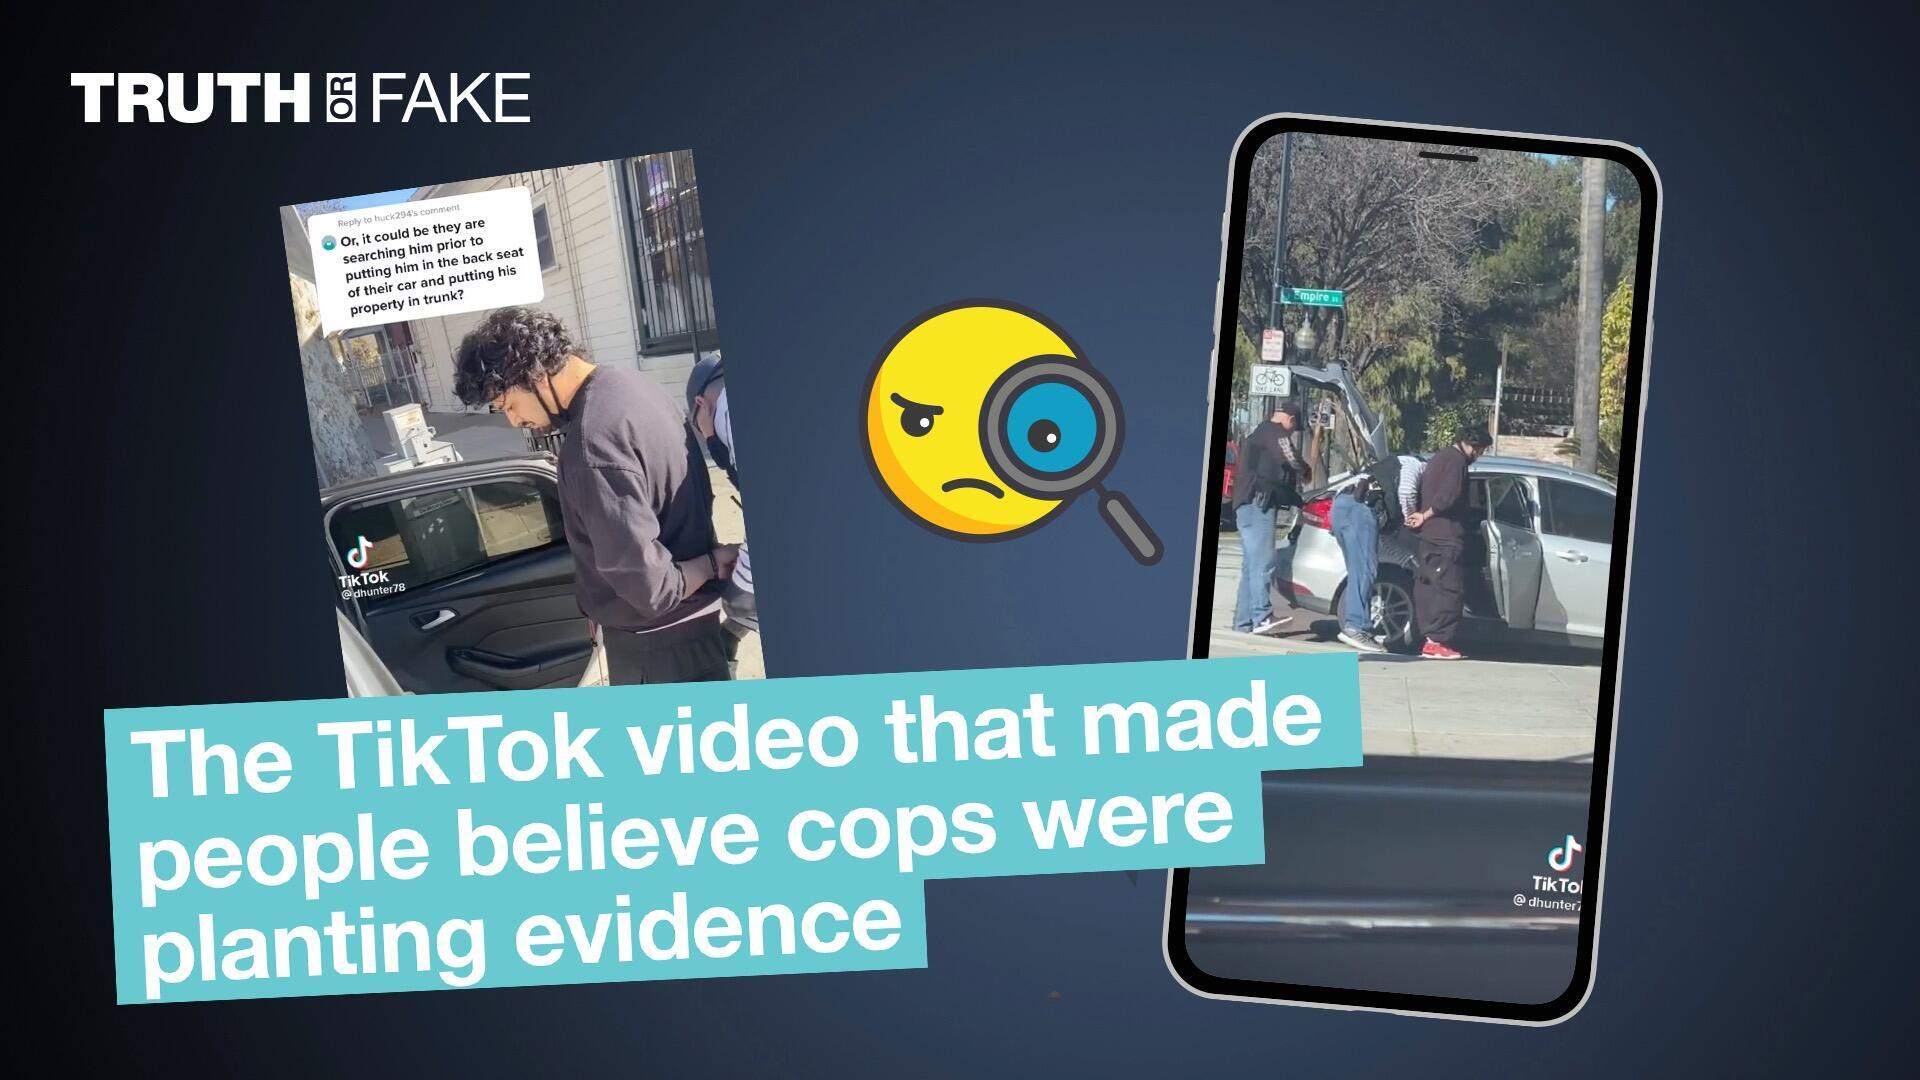 The TikTok video that made people believe cops were planting evidence